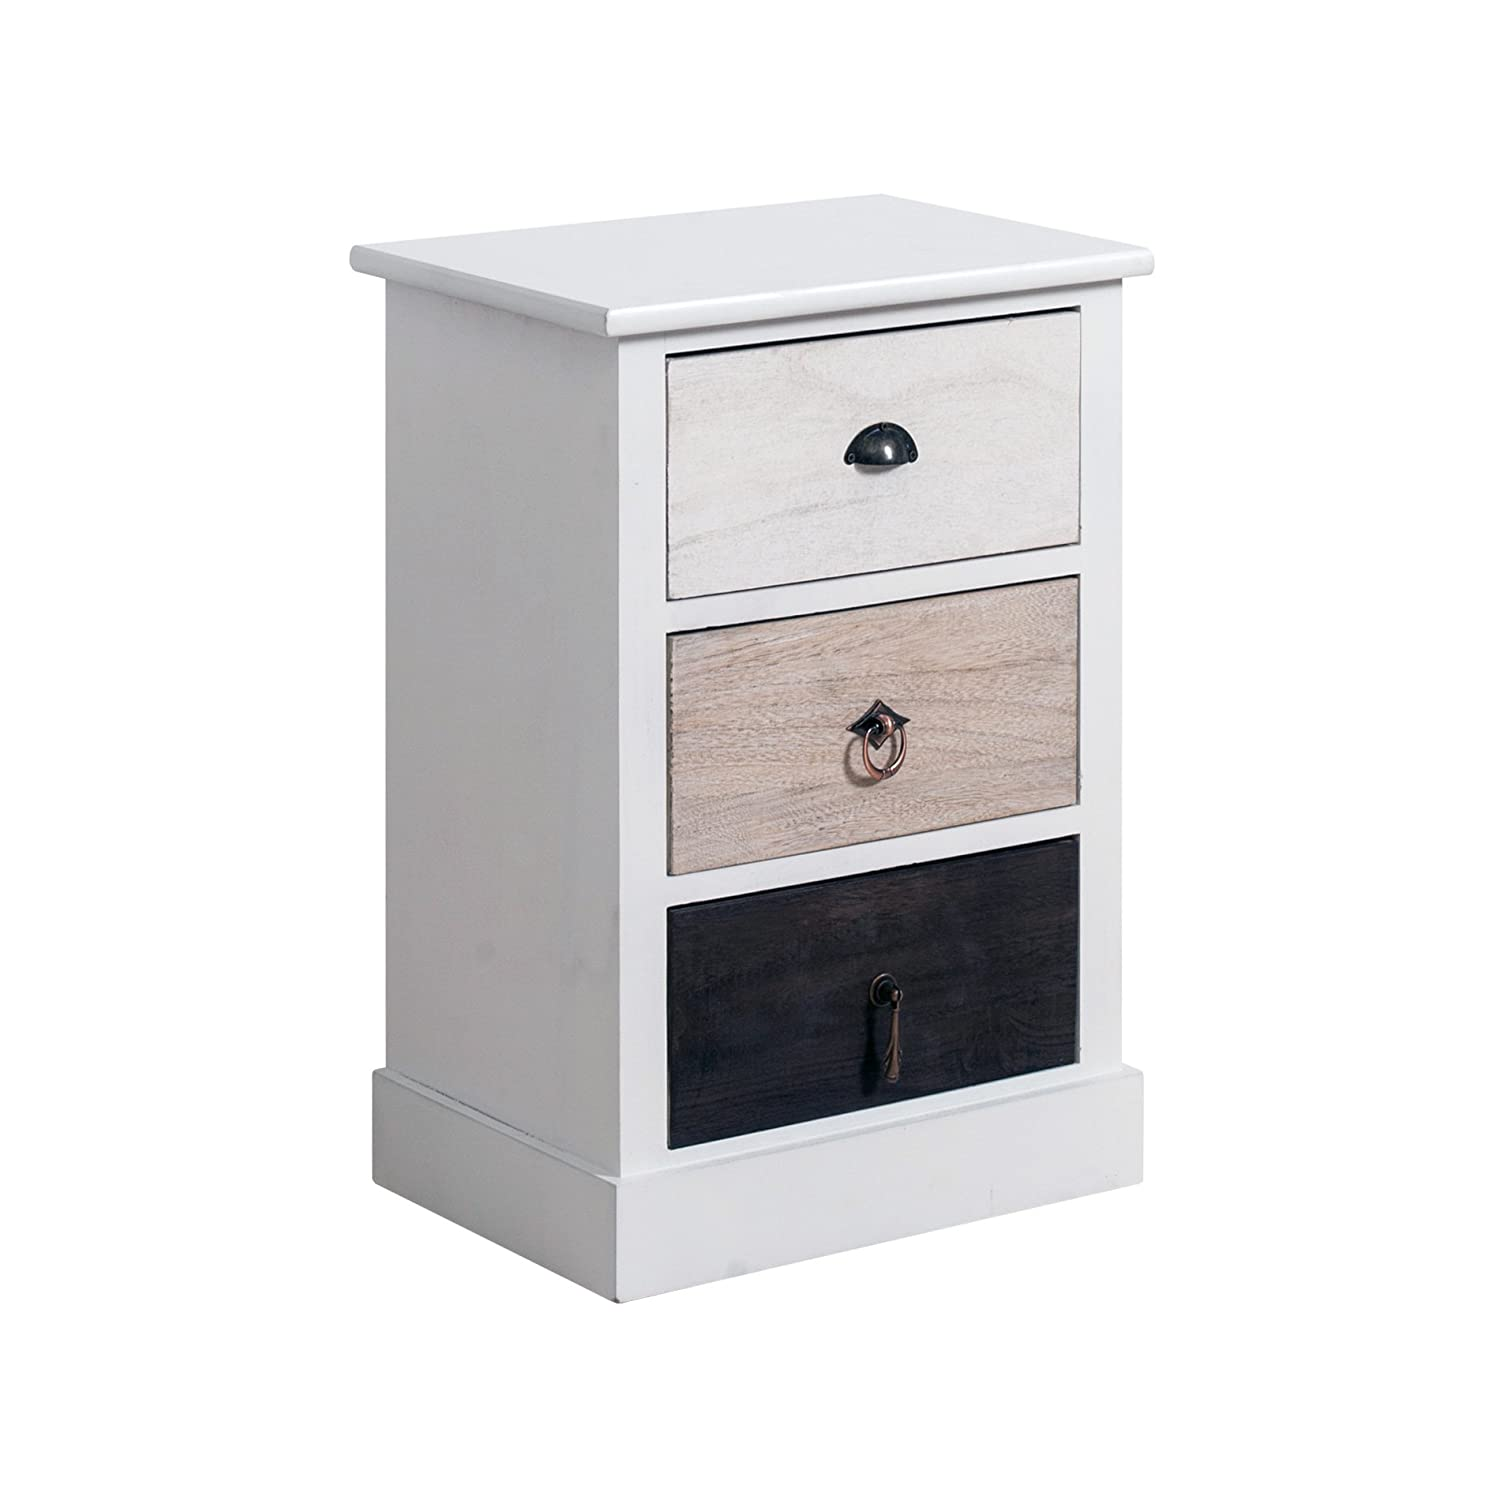 Rebecca srl commode table de chevet table de nuit tiroir - Table de nuit haute ...